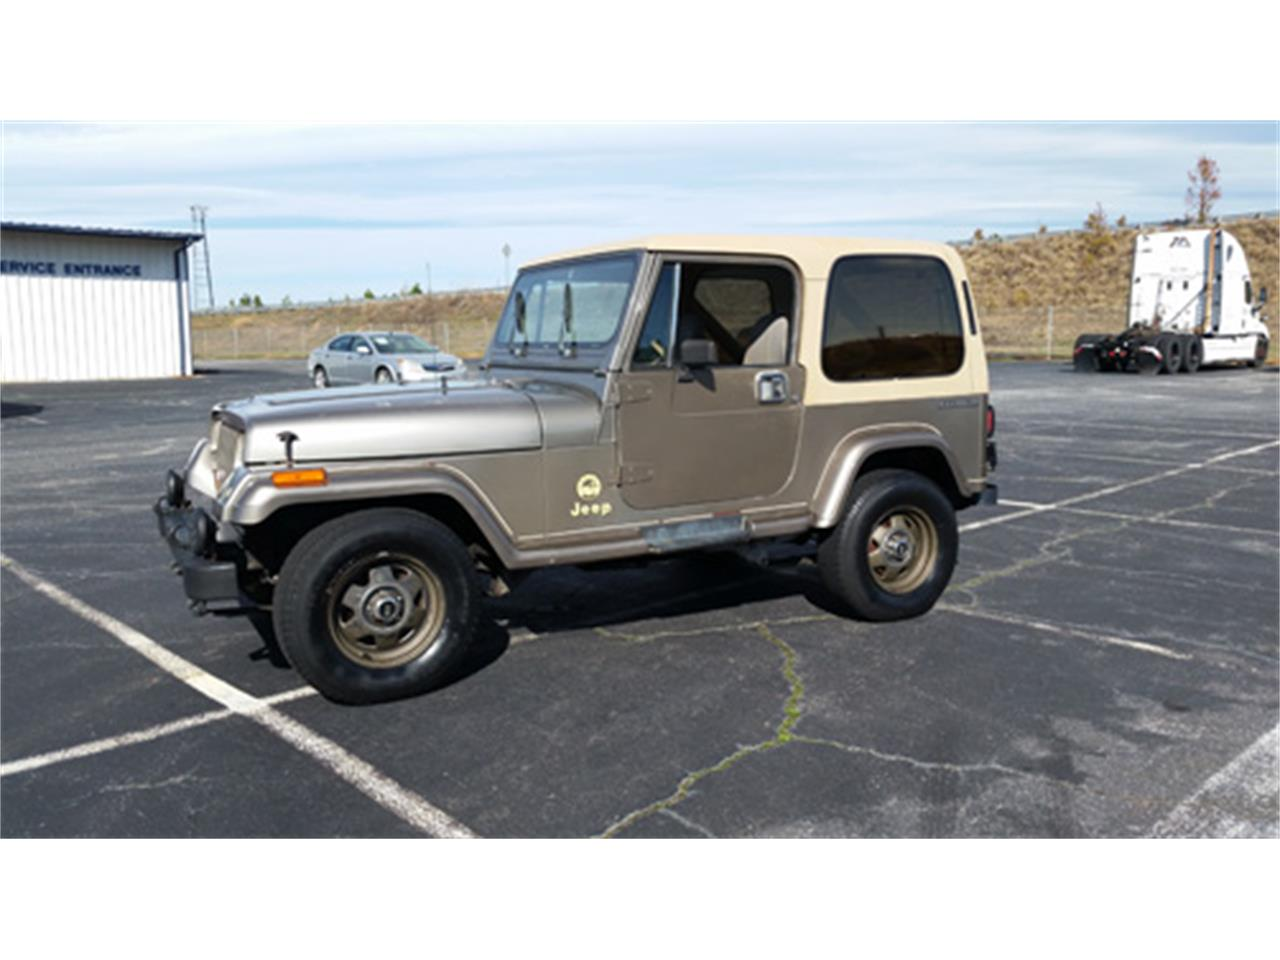 for sale 1988 jeep wrangler in simpsonville, south carolina cars - simpsonville, sc at geebo